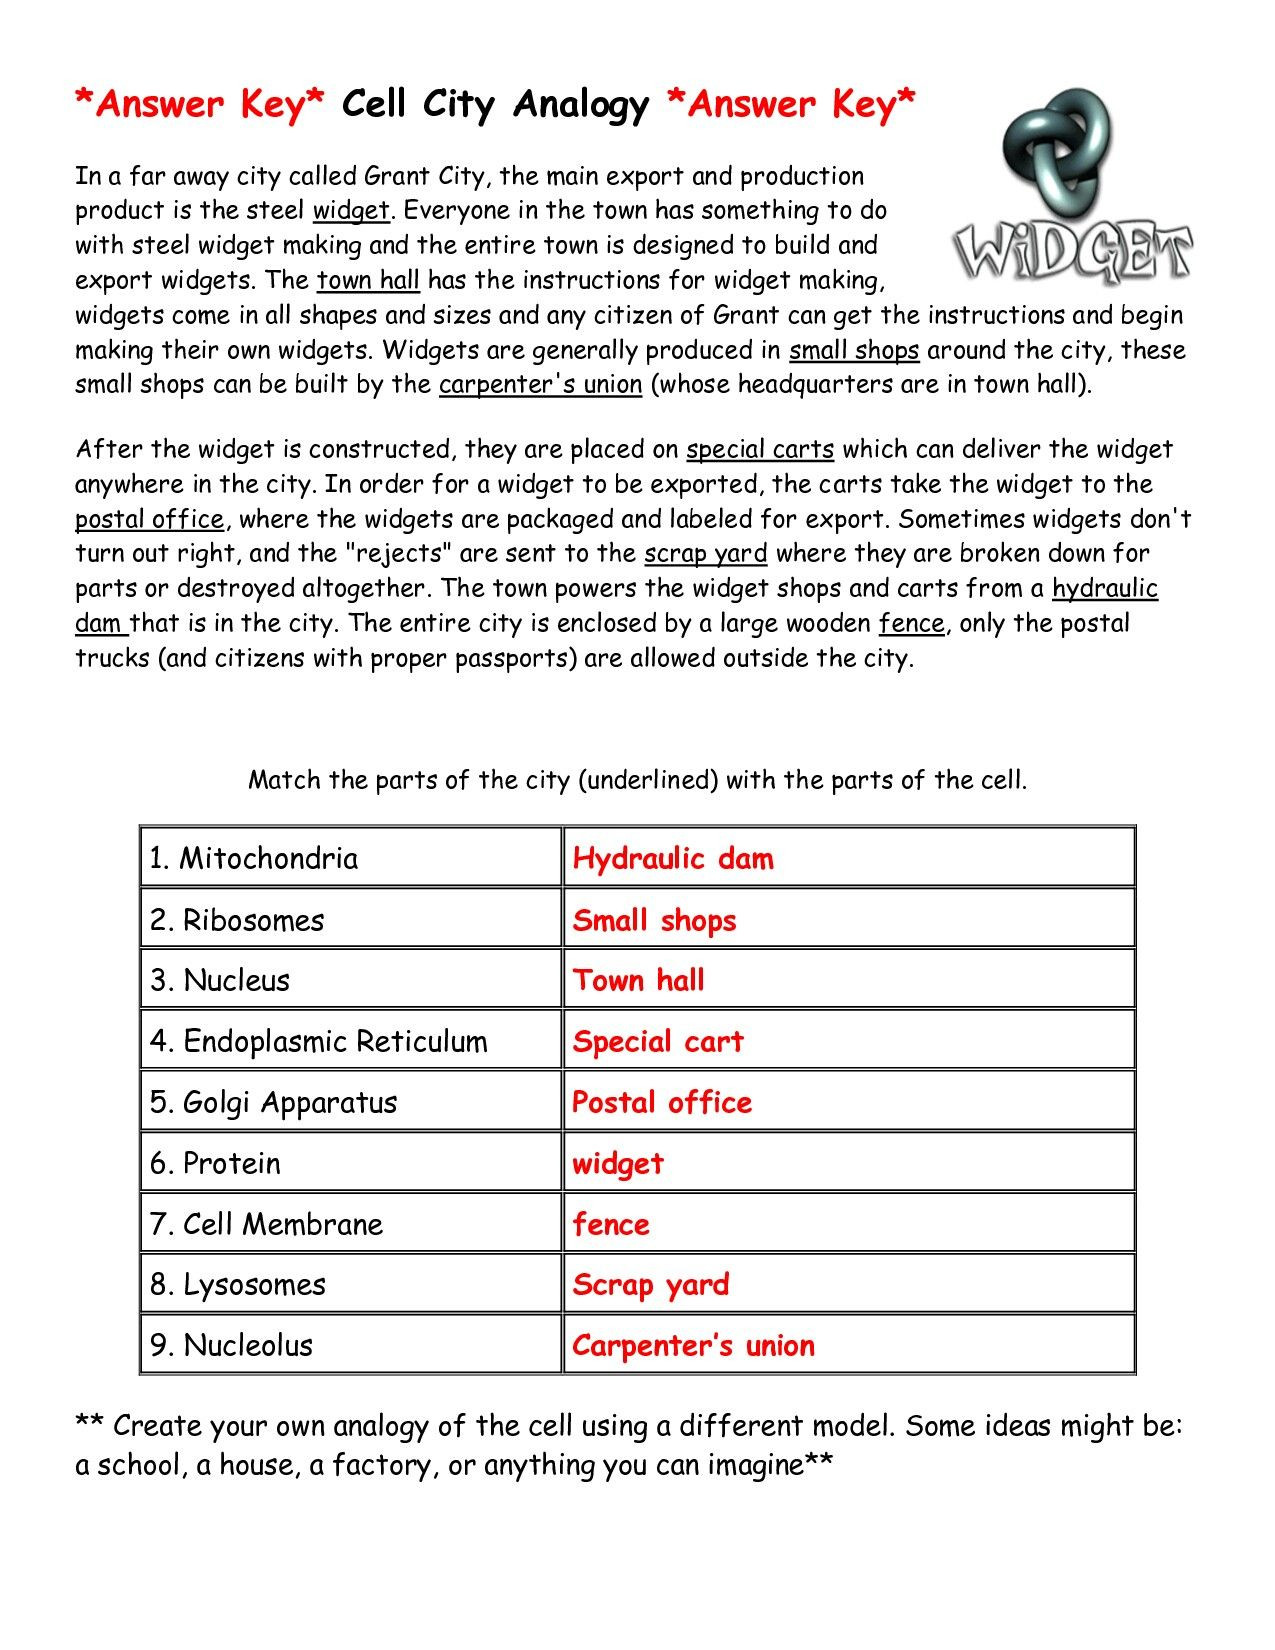 Cell City Analogy Worksheet Cell City Analogy Answers Worksheets In 2020